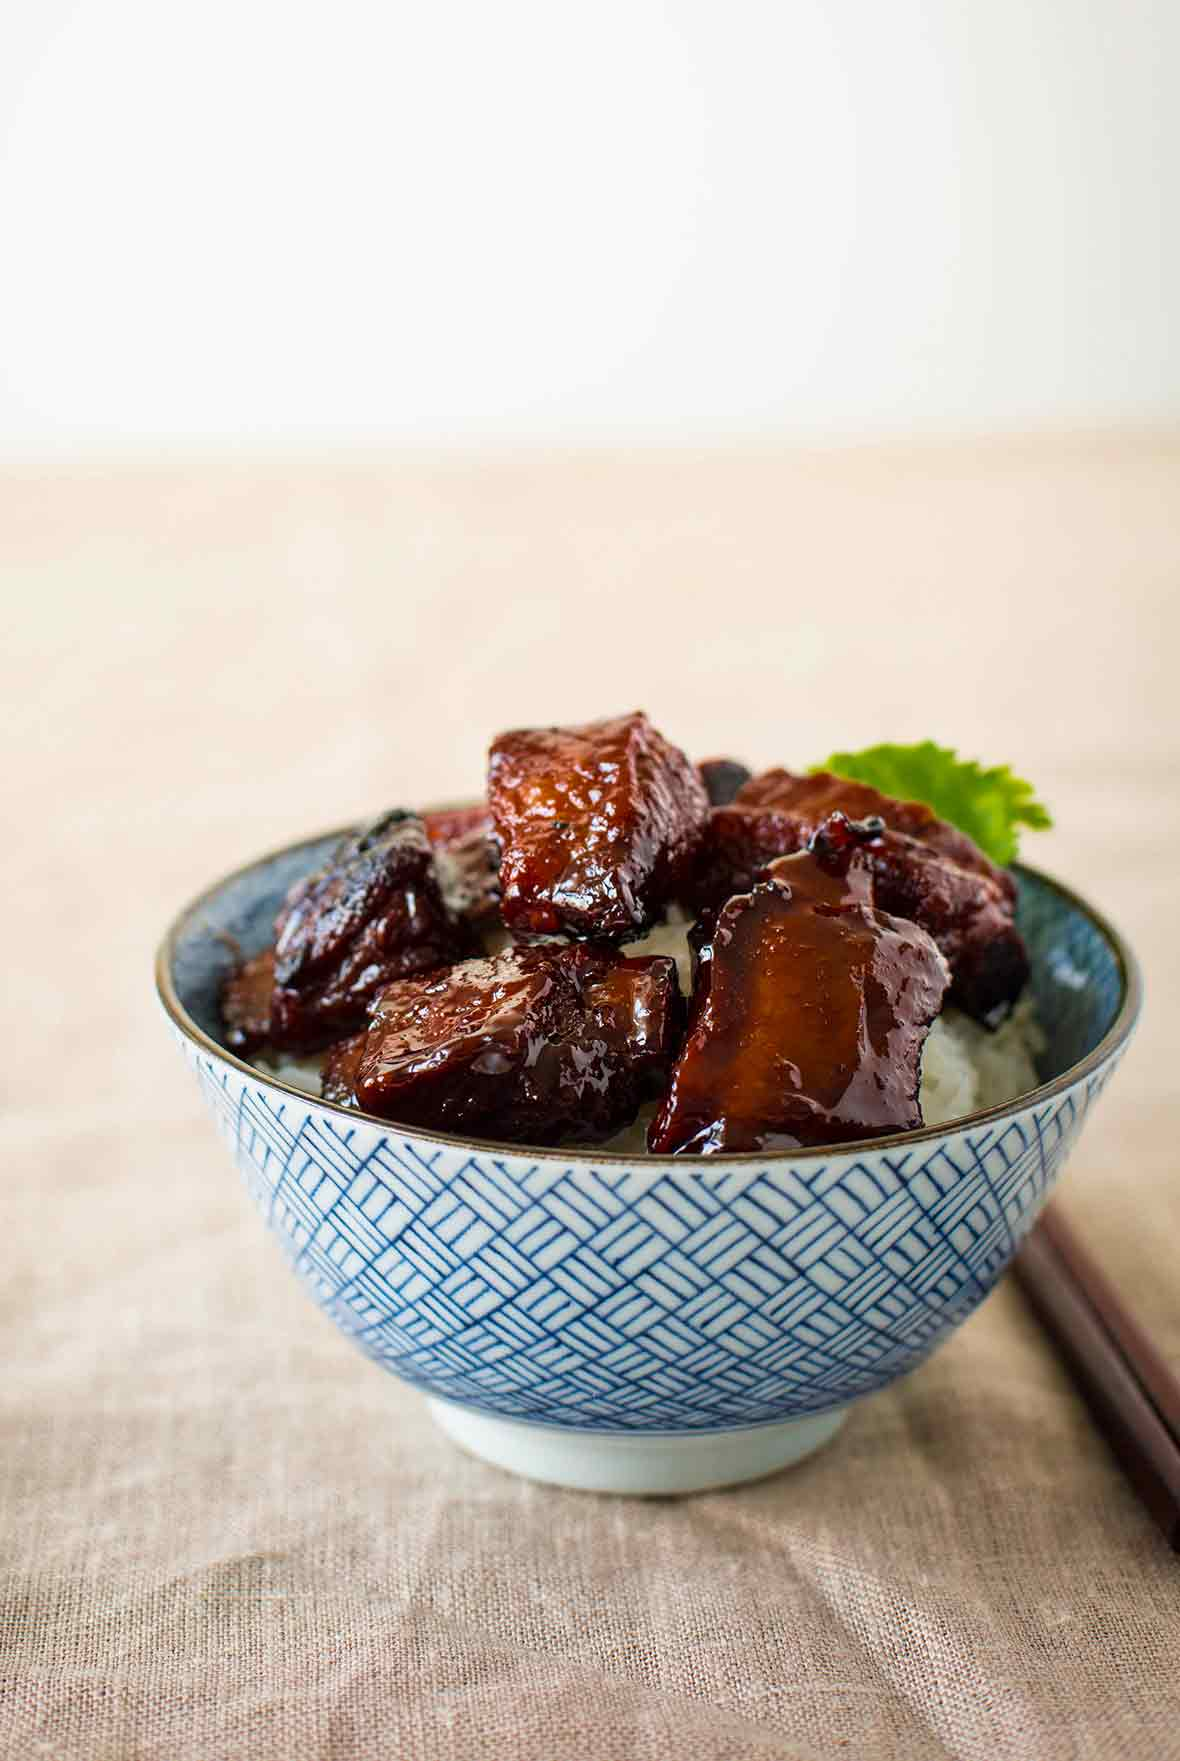 A blue and white Chinese bowl with sweet and sour spareribs in side, garnished with parsley